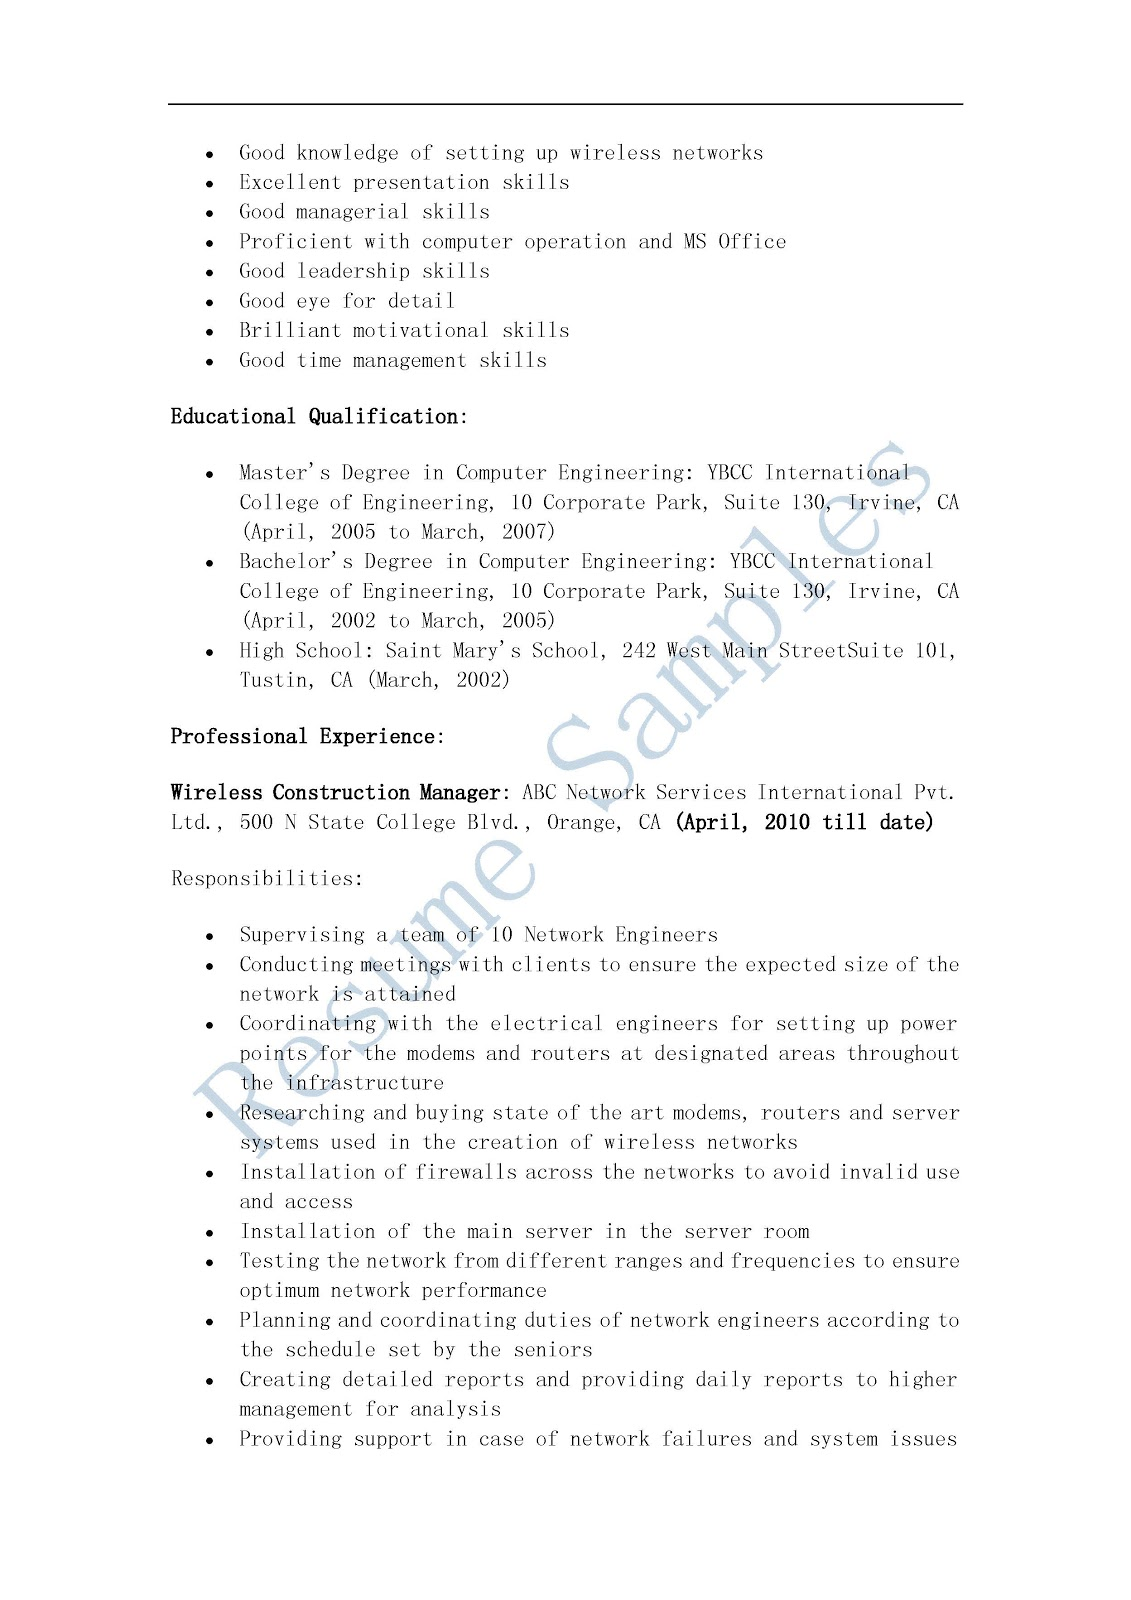 resume samples  wireless construction manager resume